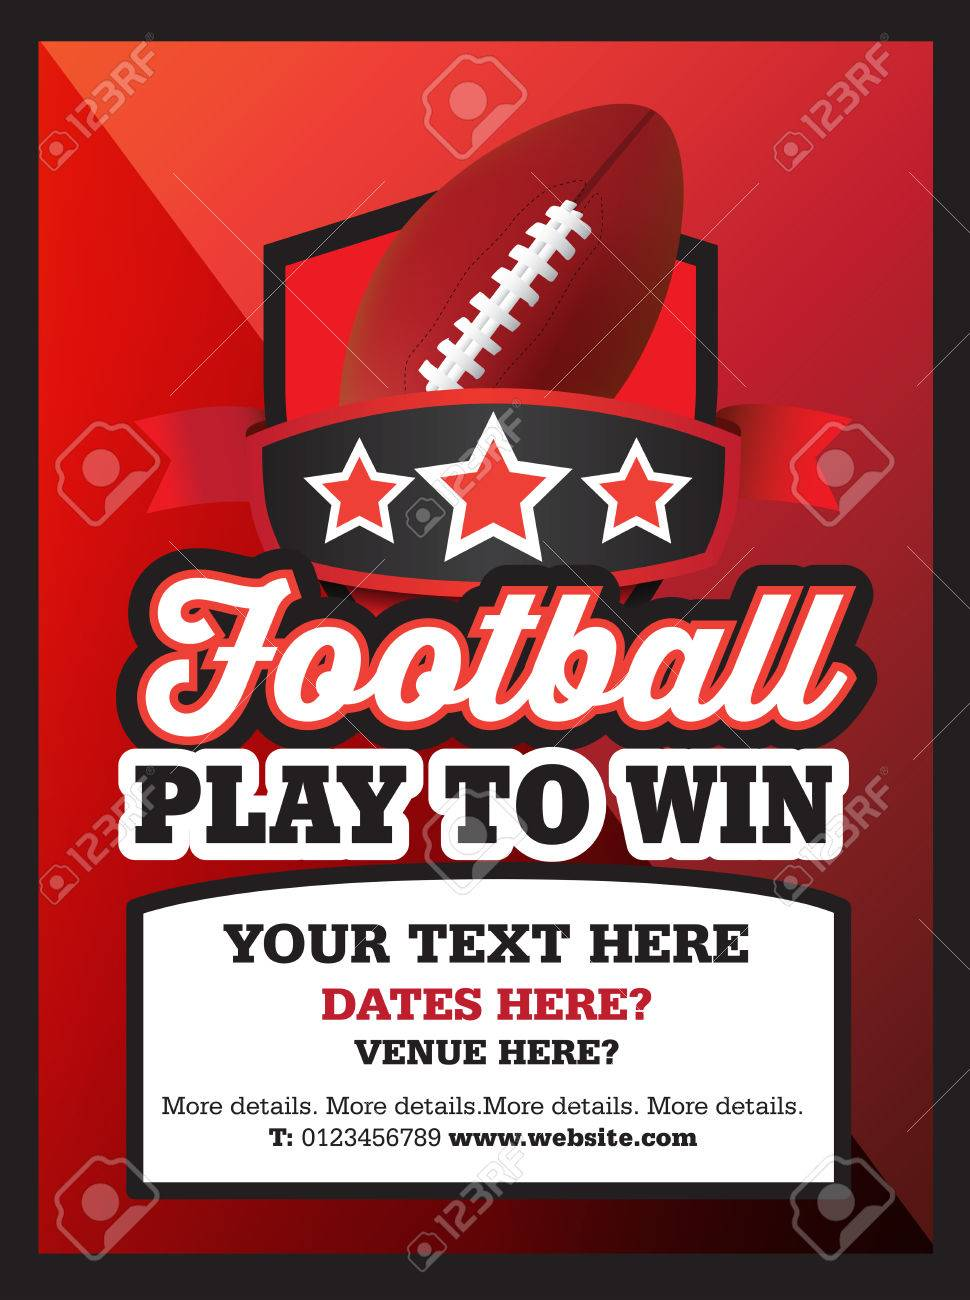 poster ad advertisement marketing or promotion flyer for a tamerican football club or event stock